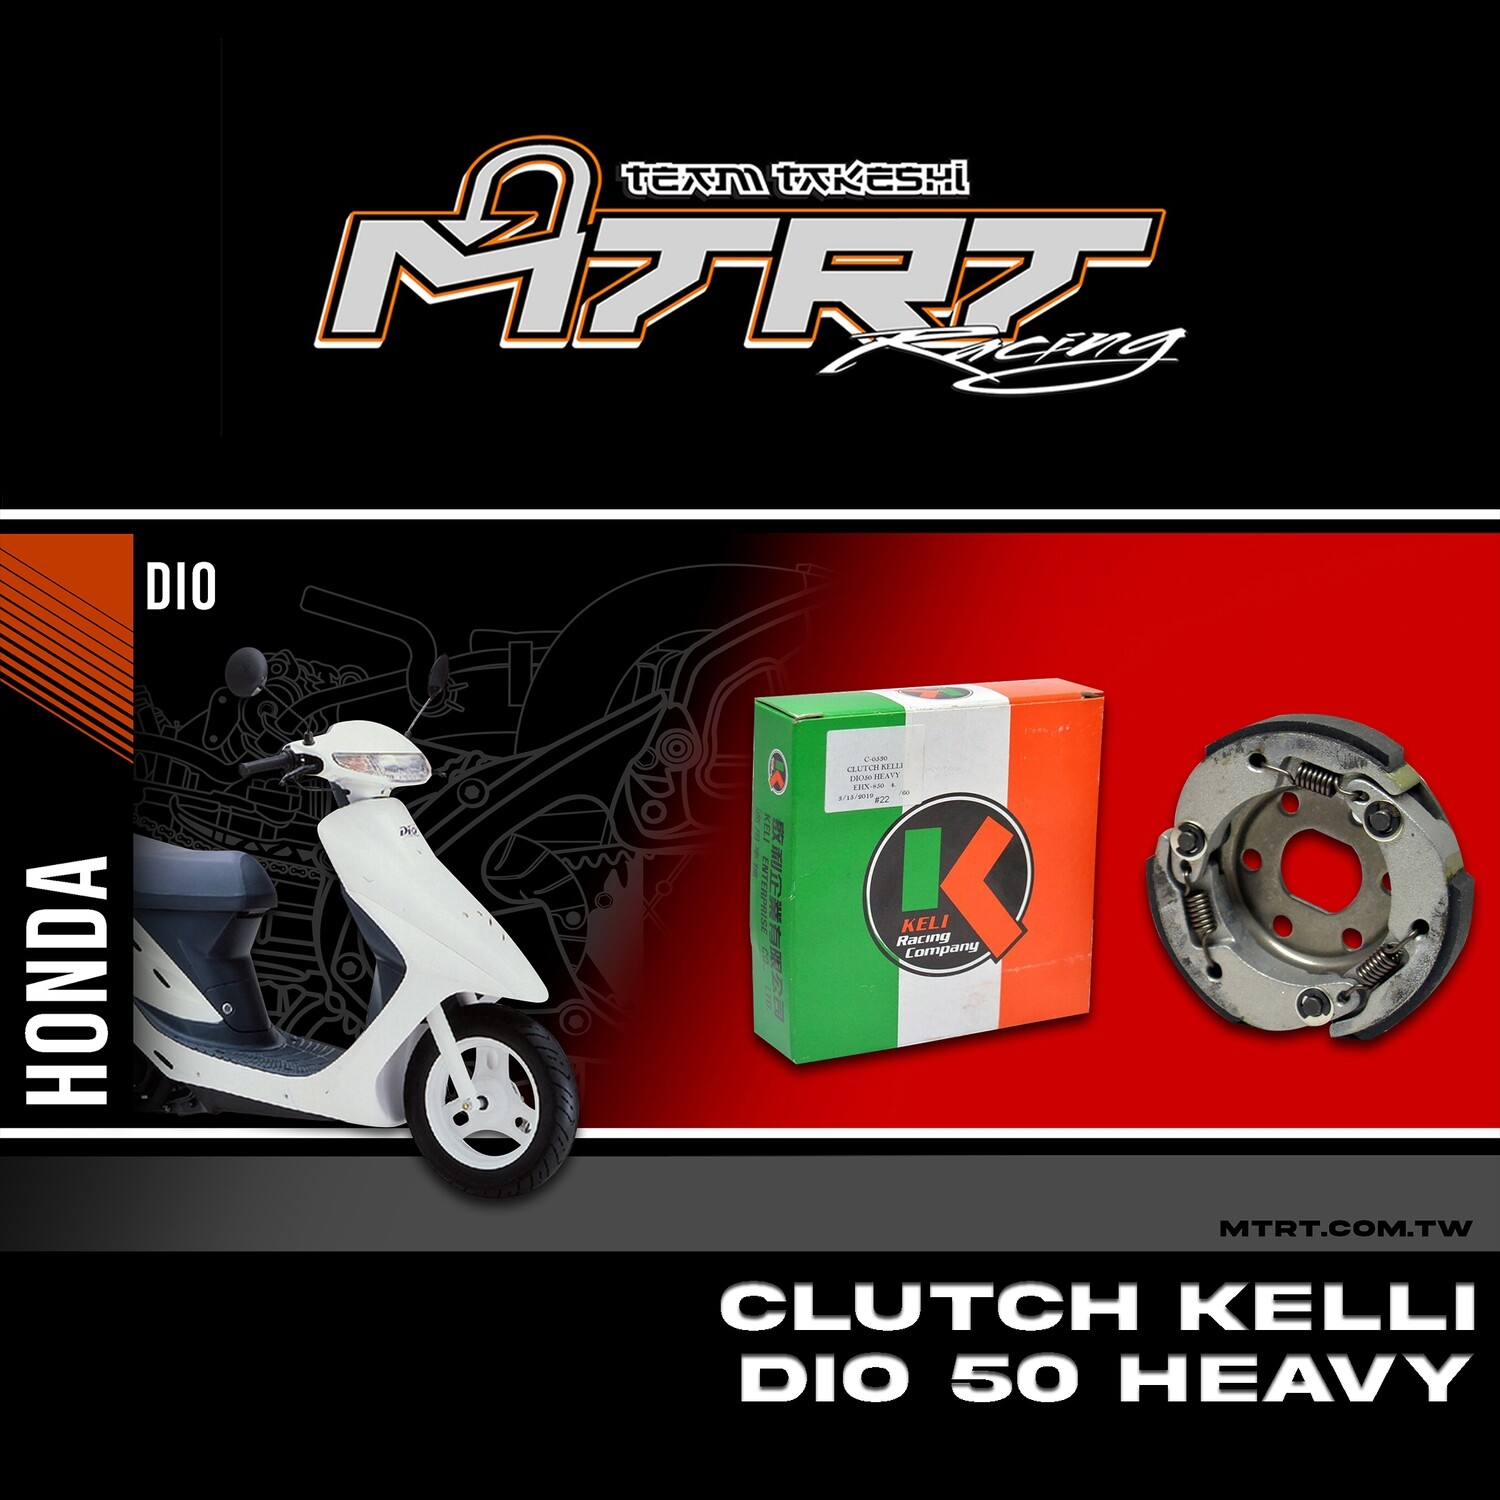 CLUTCH KELLI DIO50 HEAVY